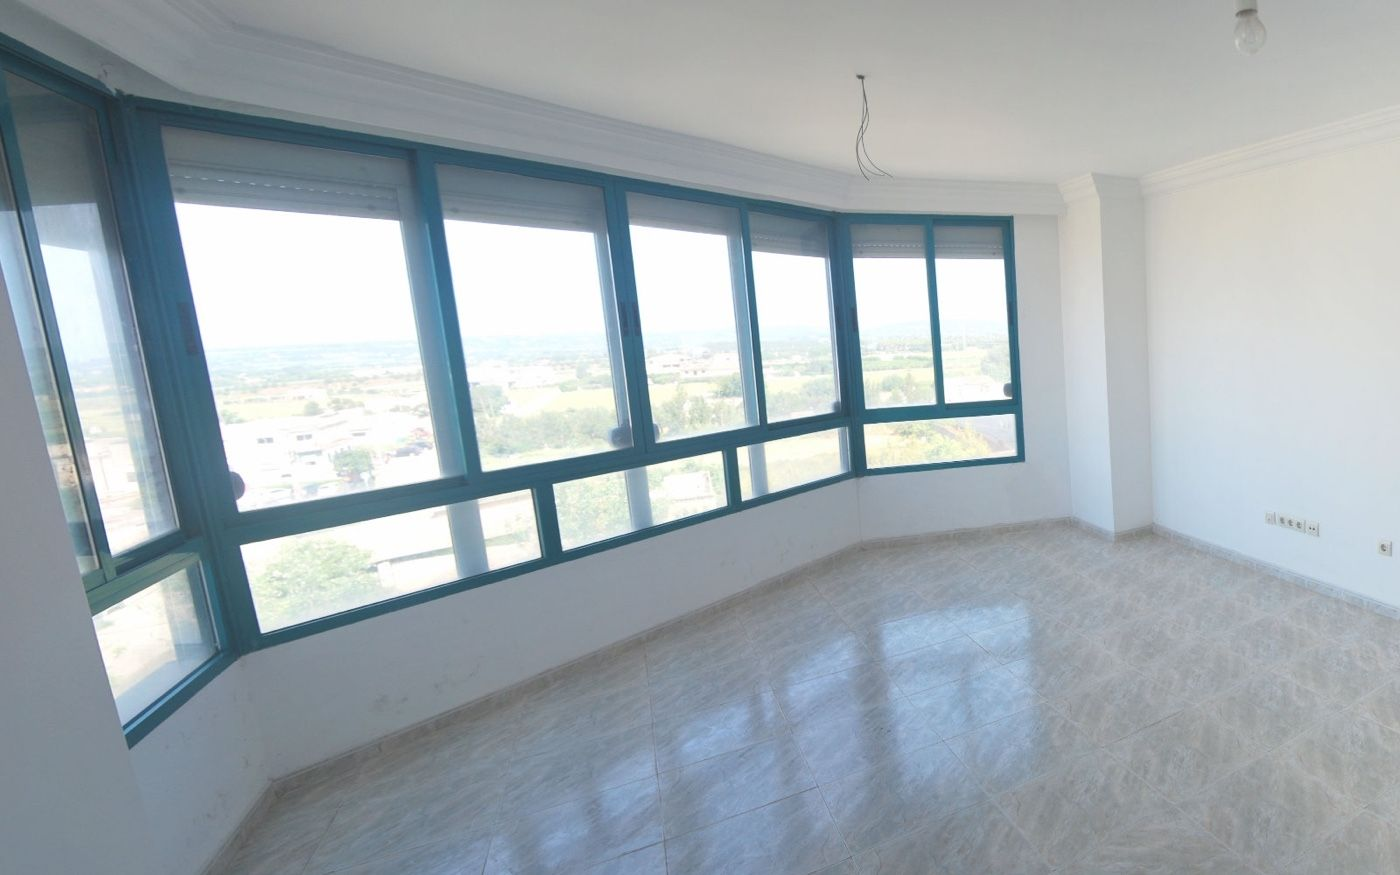 Appartement à Via palma, 90. Gran oportunidad en manacor